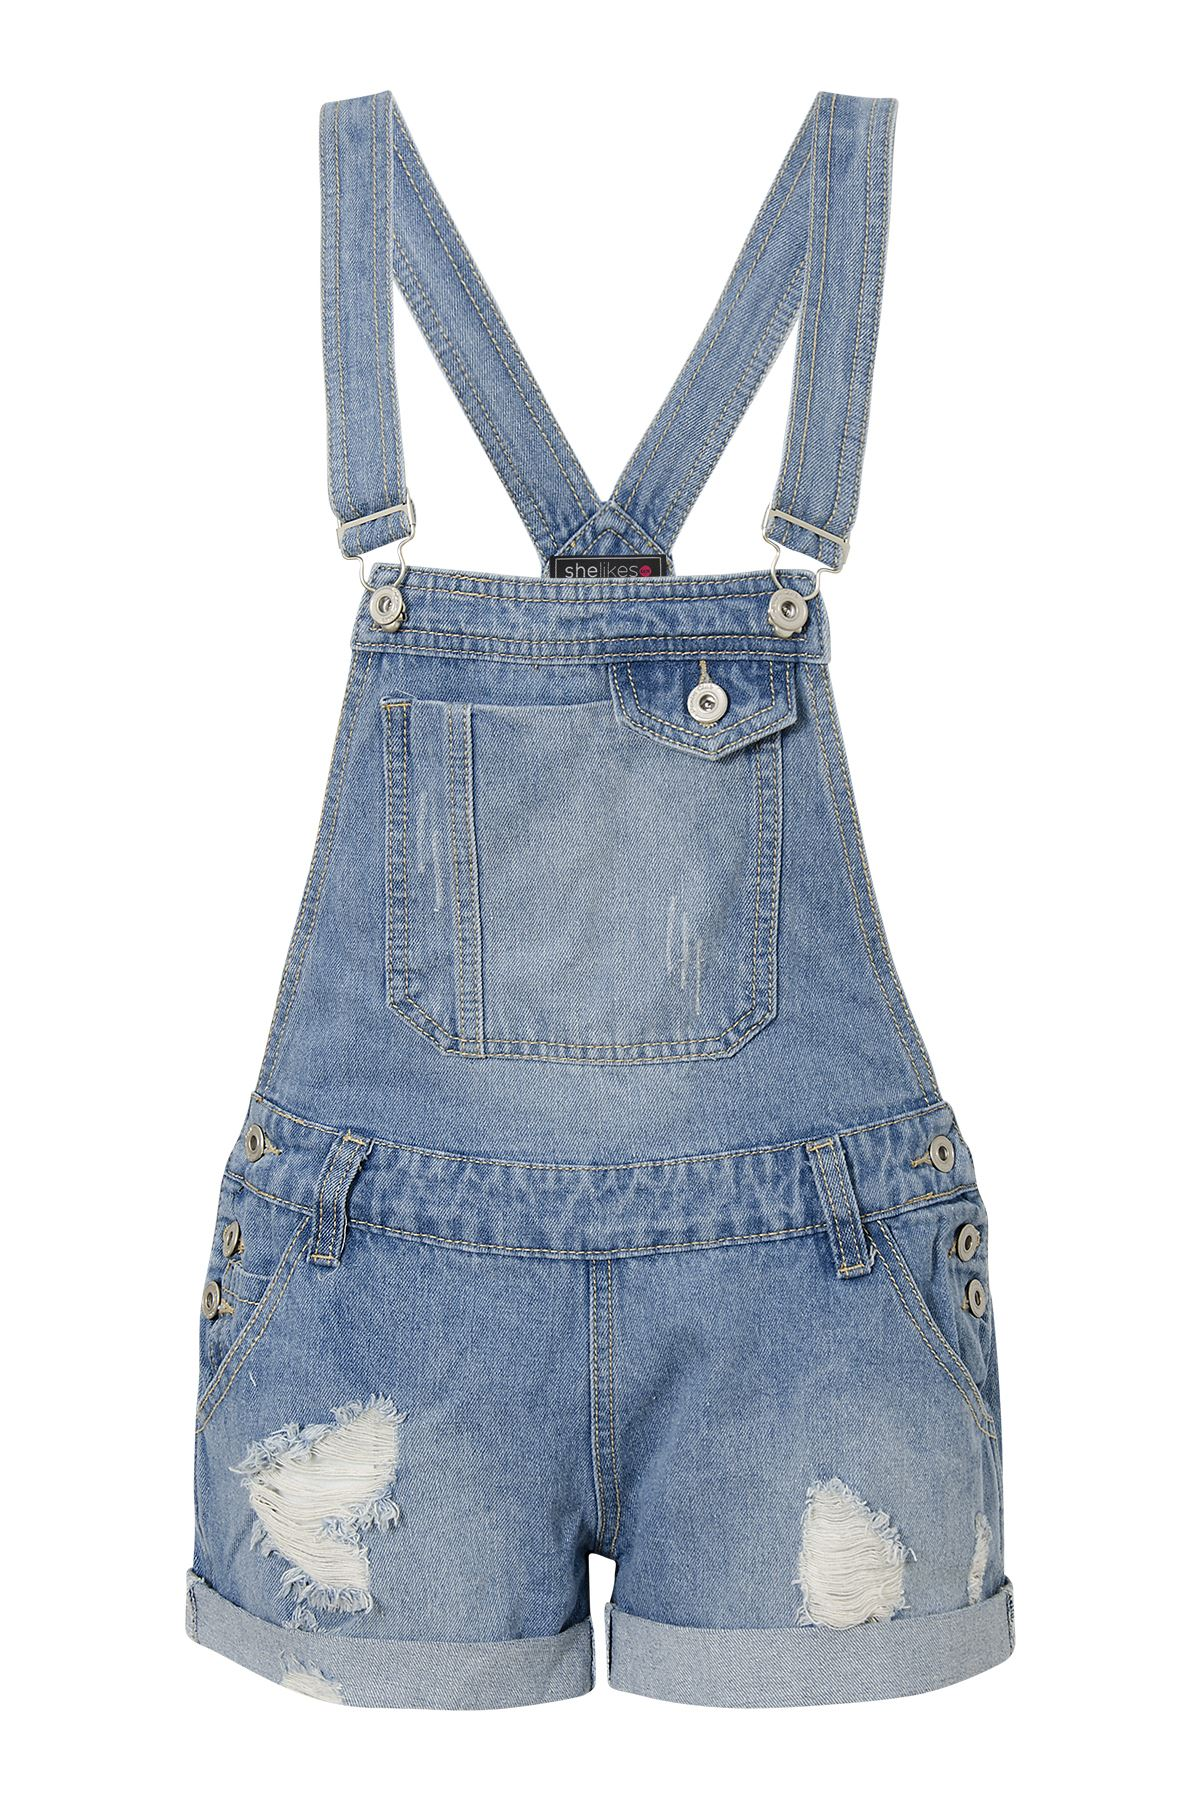 New Womens Ladies Denim Dungarees Ripped Multi Coloured Skirt Casual Sizes 6-14 | eBay